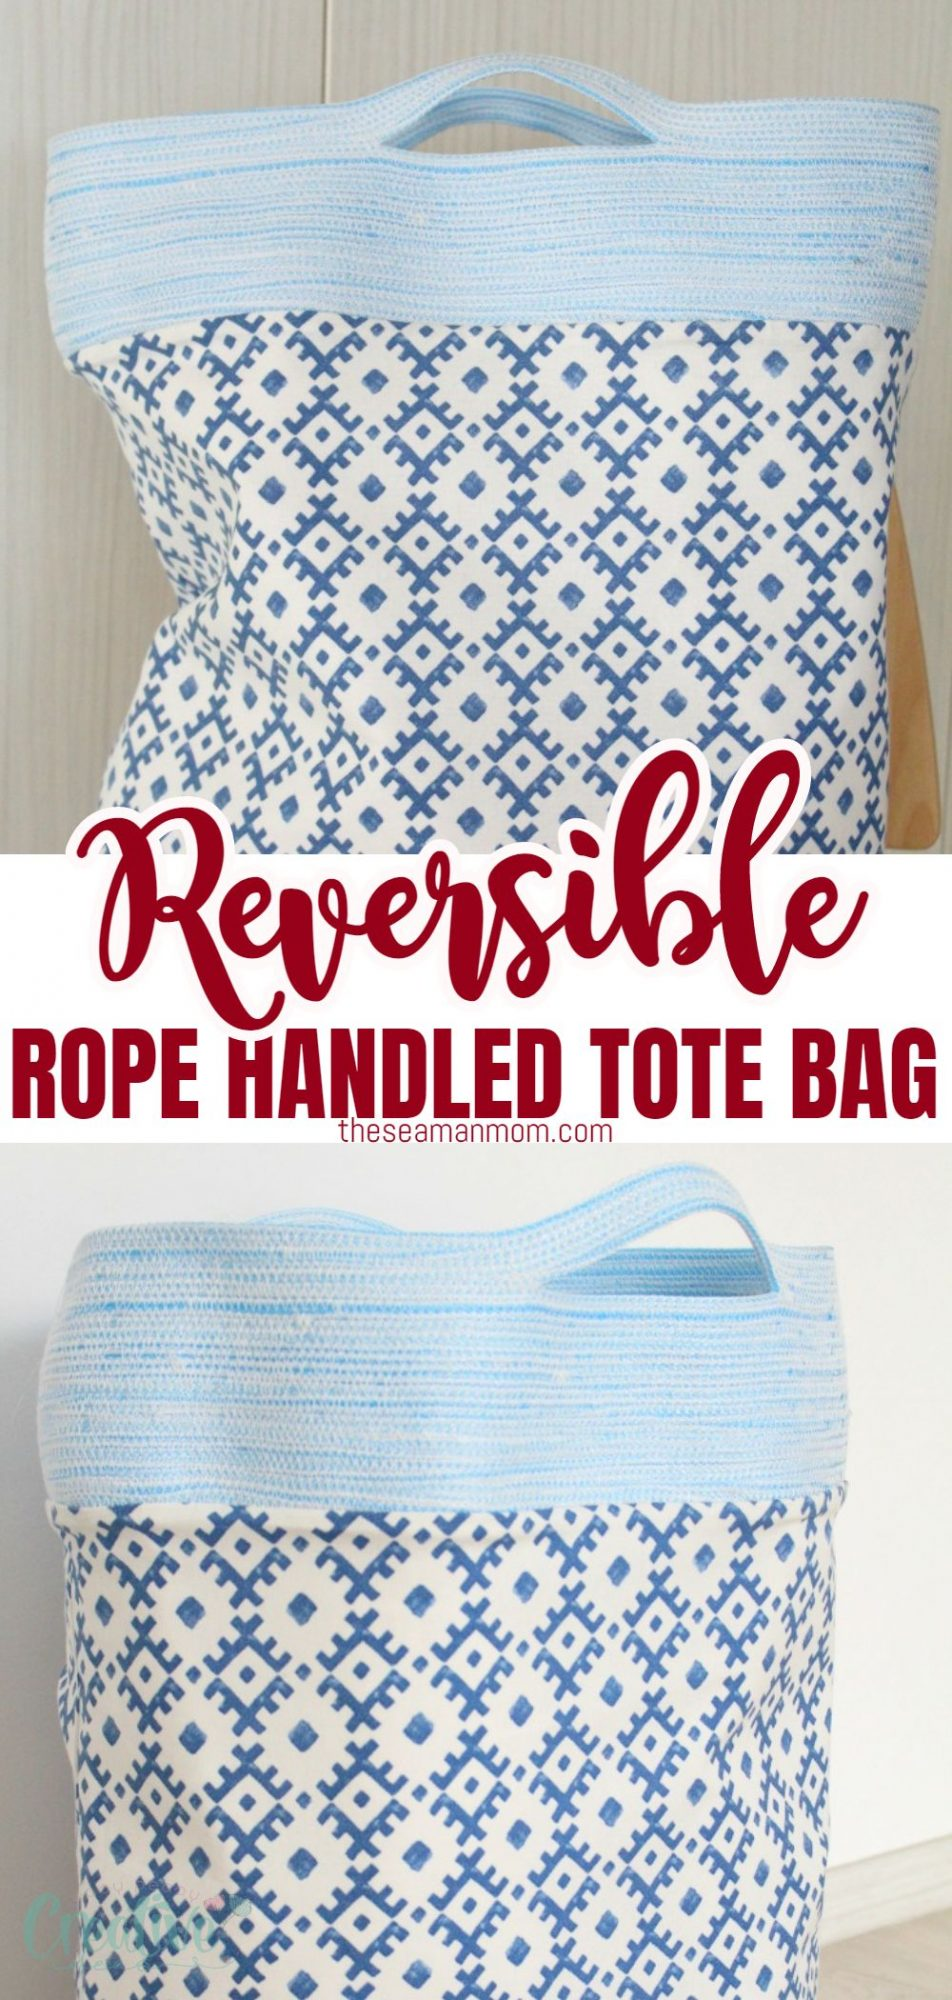 Photo collage of a reversible tote bag with rope handles viewed from the front and the side.